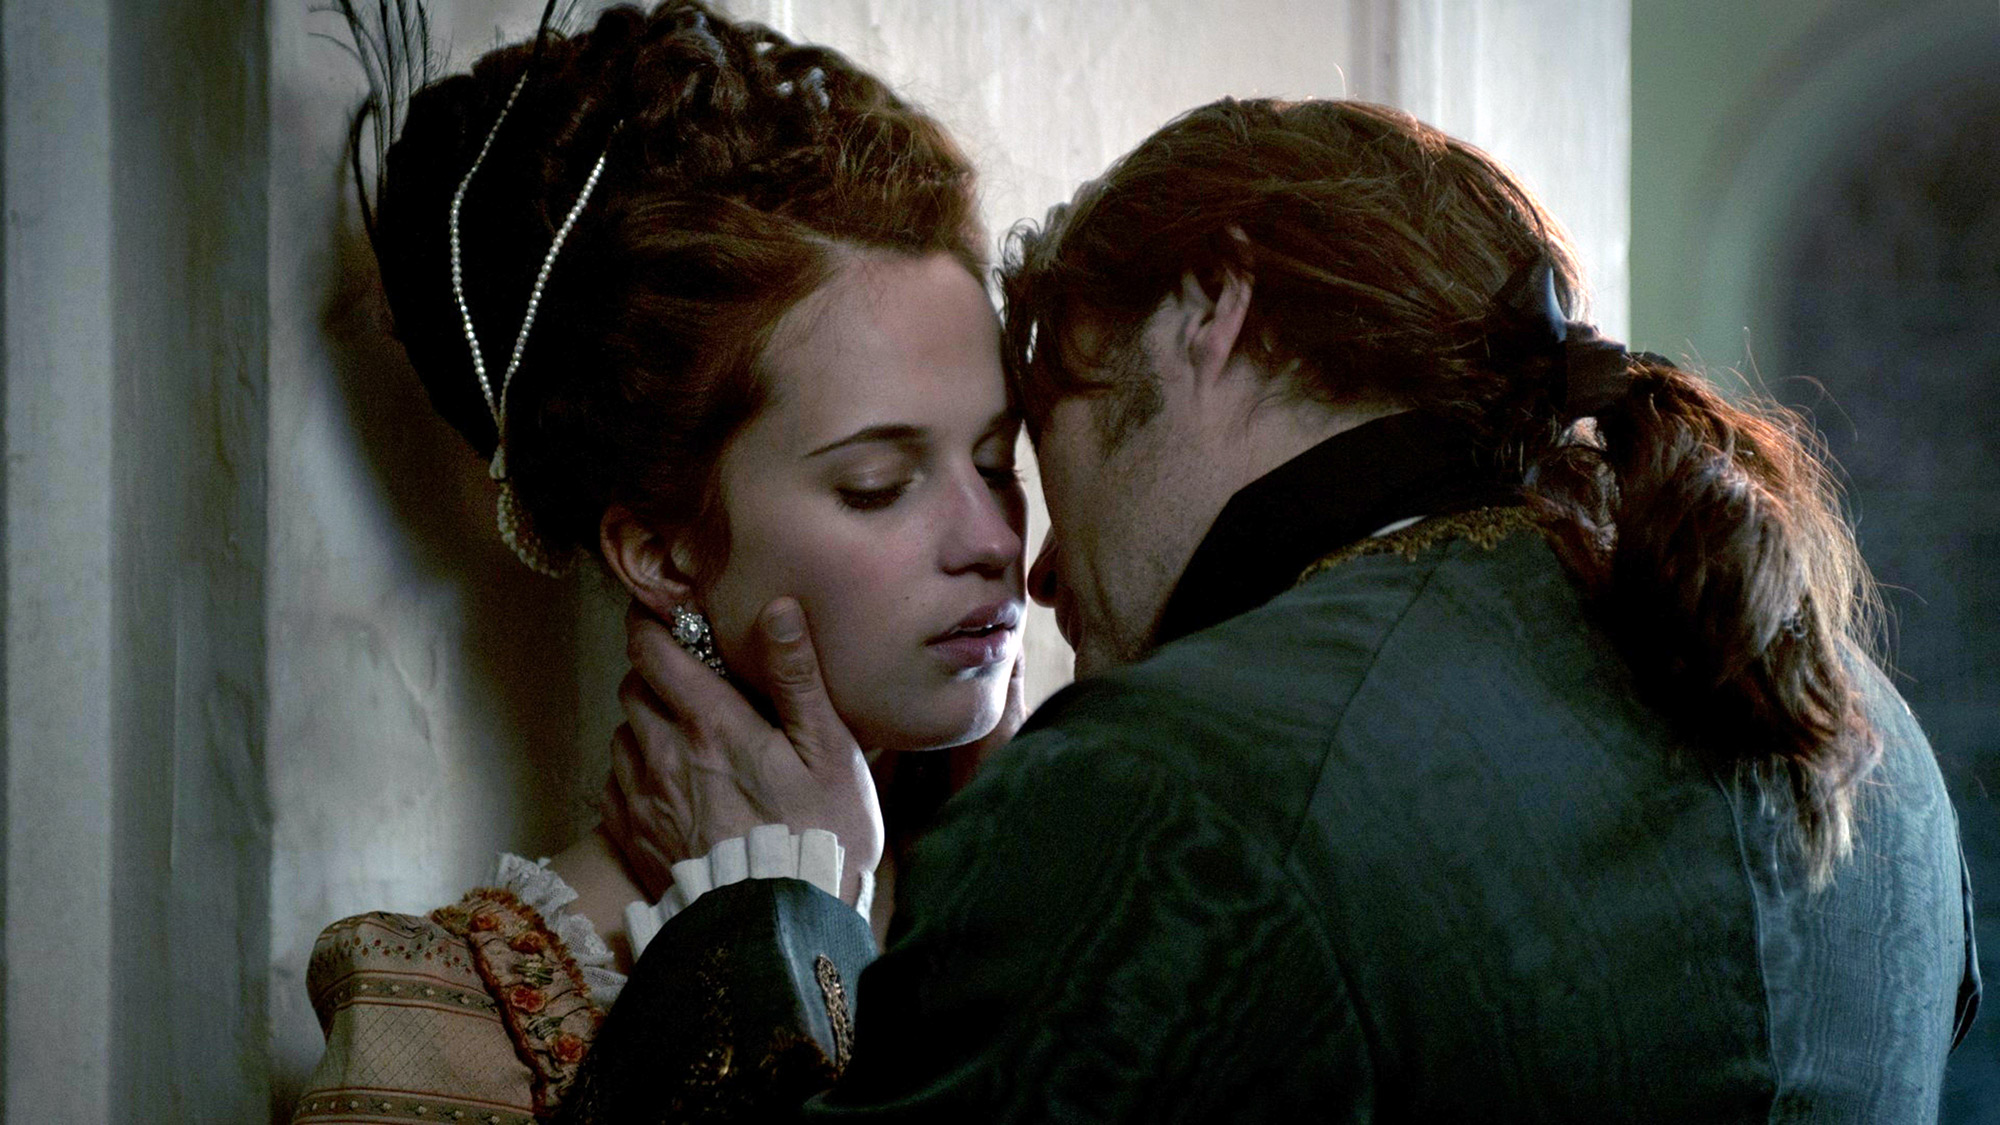 Erotic Foreign Films - A Royal Affair, kiss